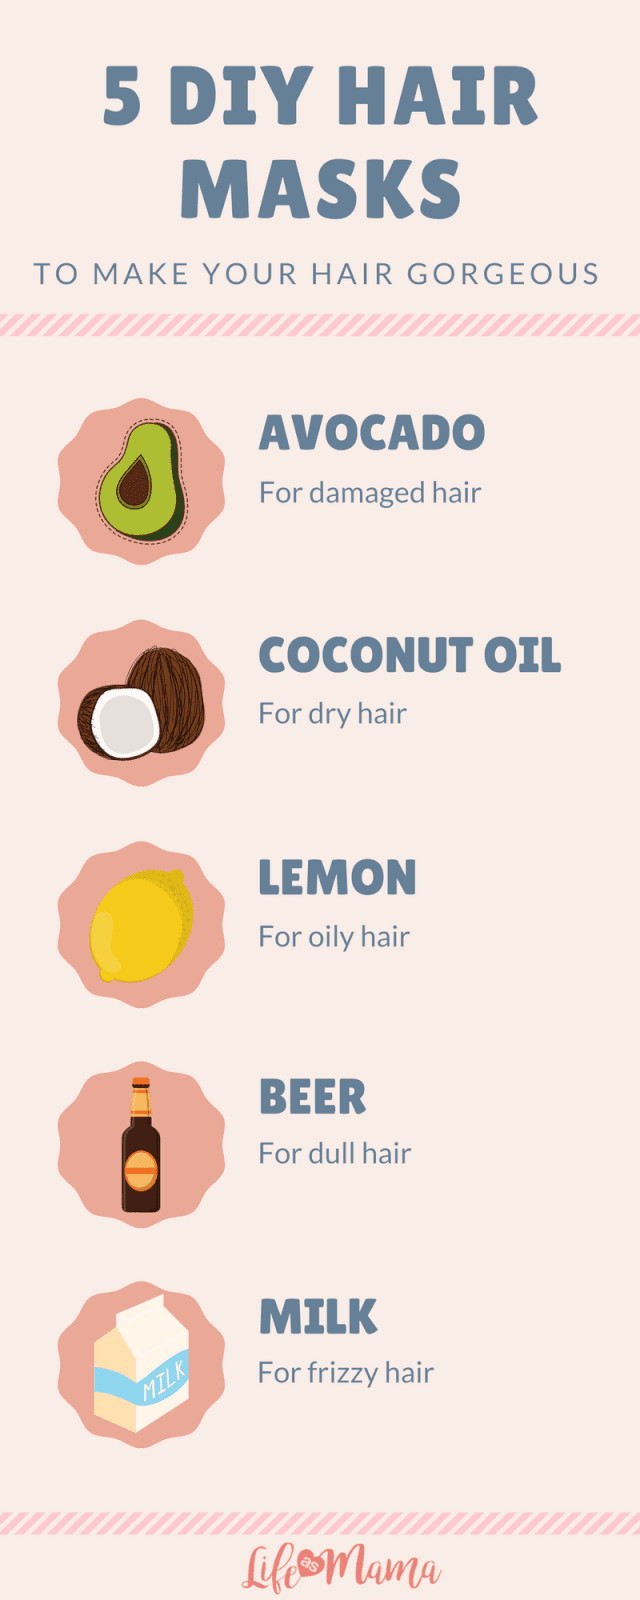 Best ideas about DIY Hair Masks . Save or Pin 5 DIY Hair Masks To Make Your Hair Gorgeous Now.